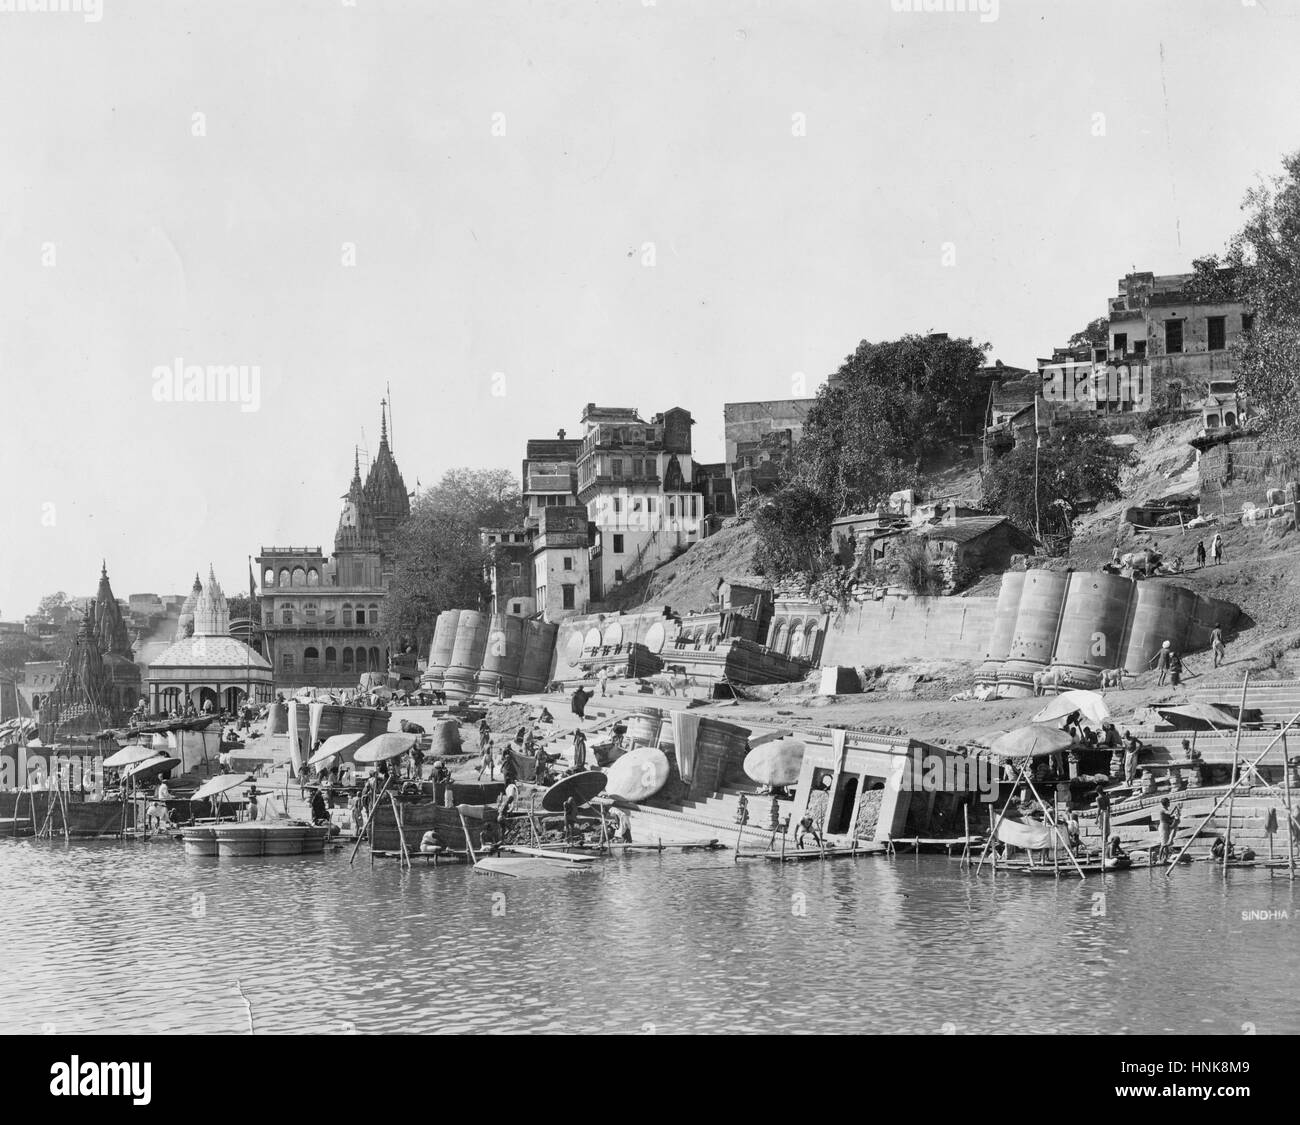 Scindia Ghat - Sunken Stairway and columns of the Shiva Temple, on the Ganges River, India. The construction of - Stock Image